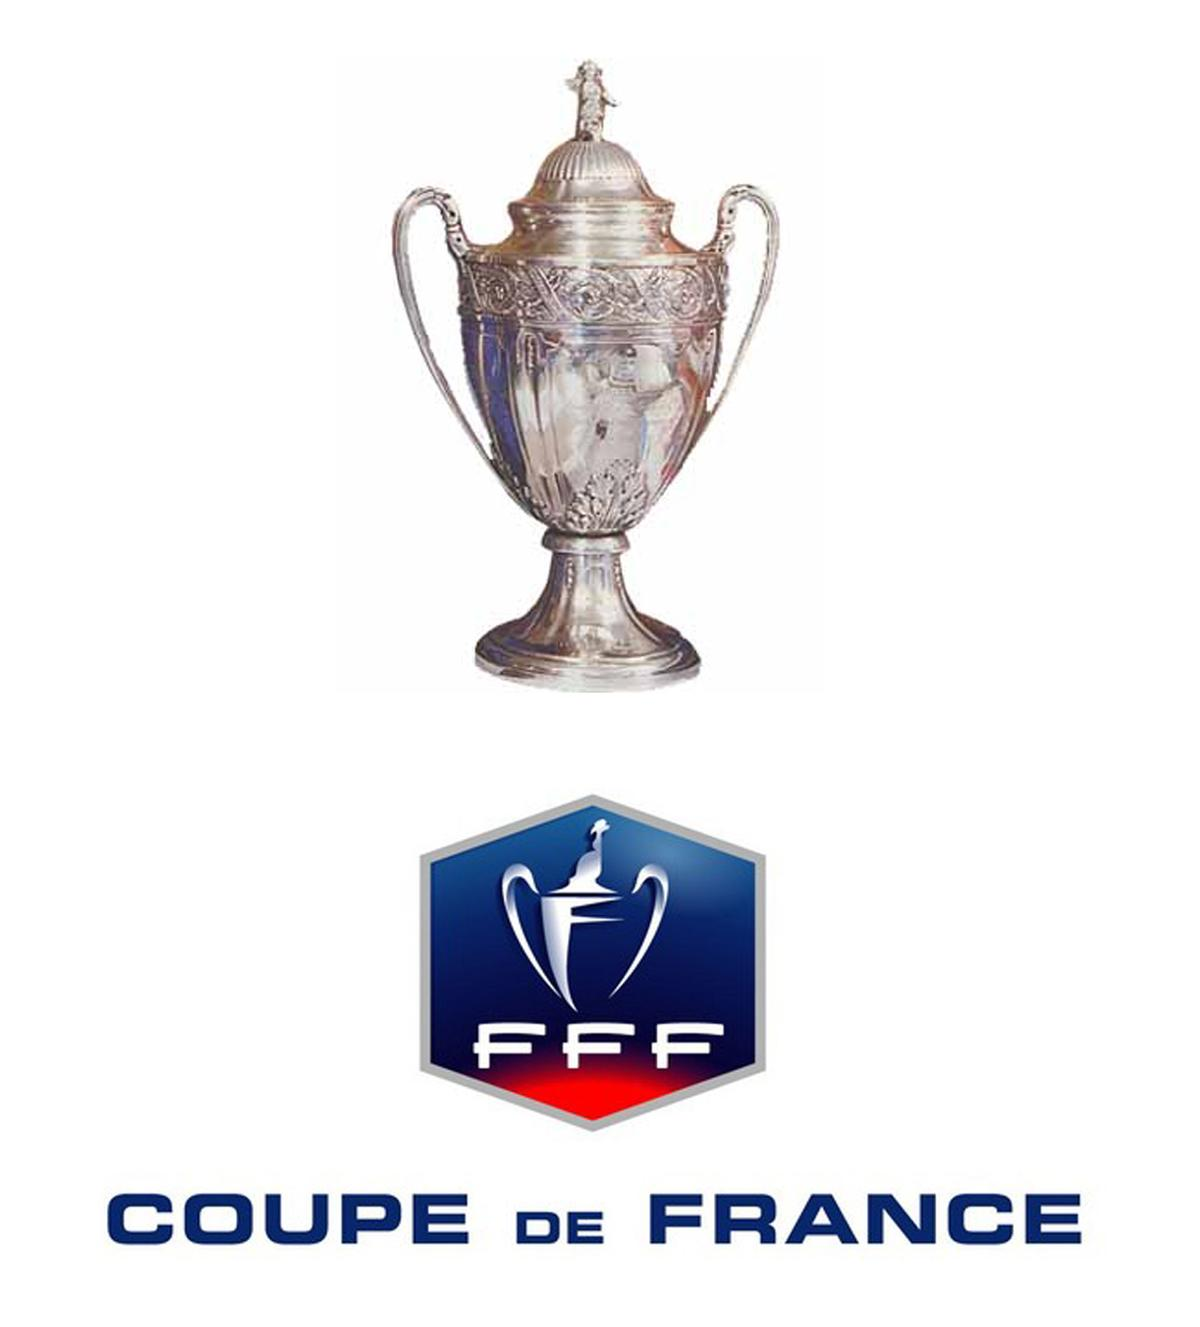 Actualit tirage de la coupe de france club football salanca football club footeo - Foot tirage coupe de france ...